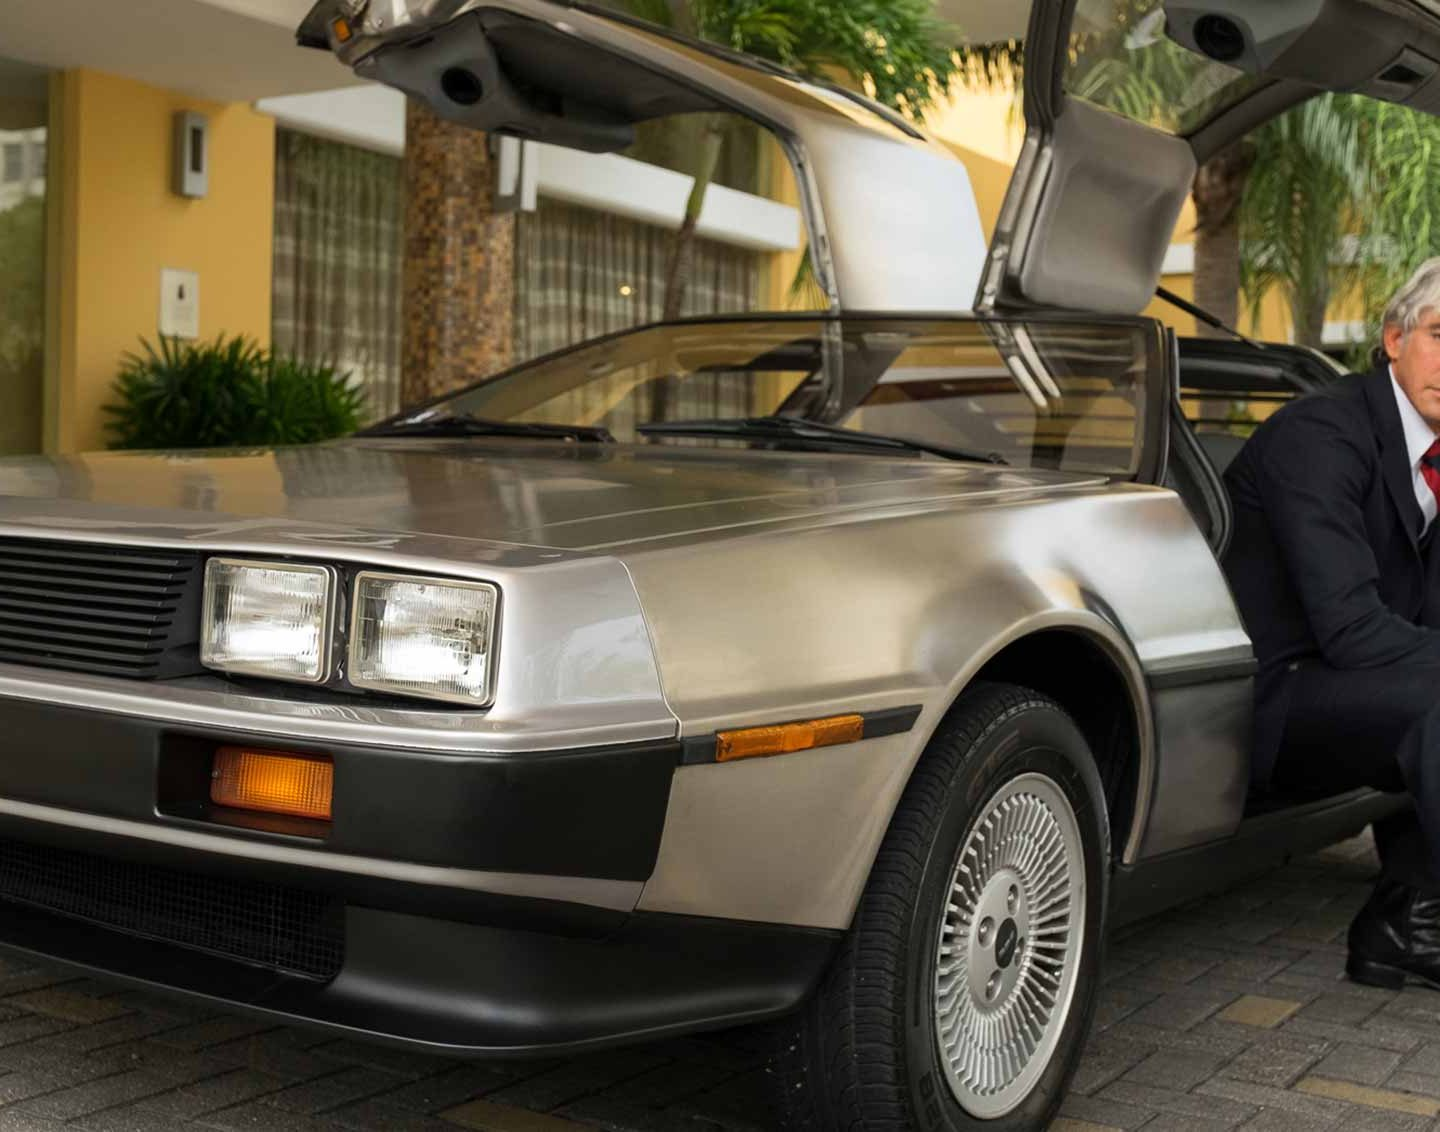 Driven – A John DeLorean Story